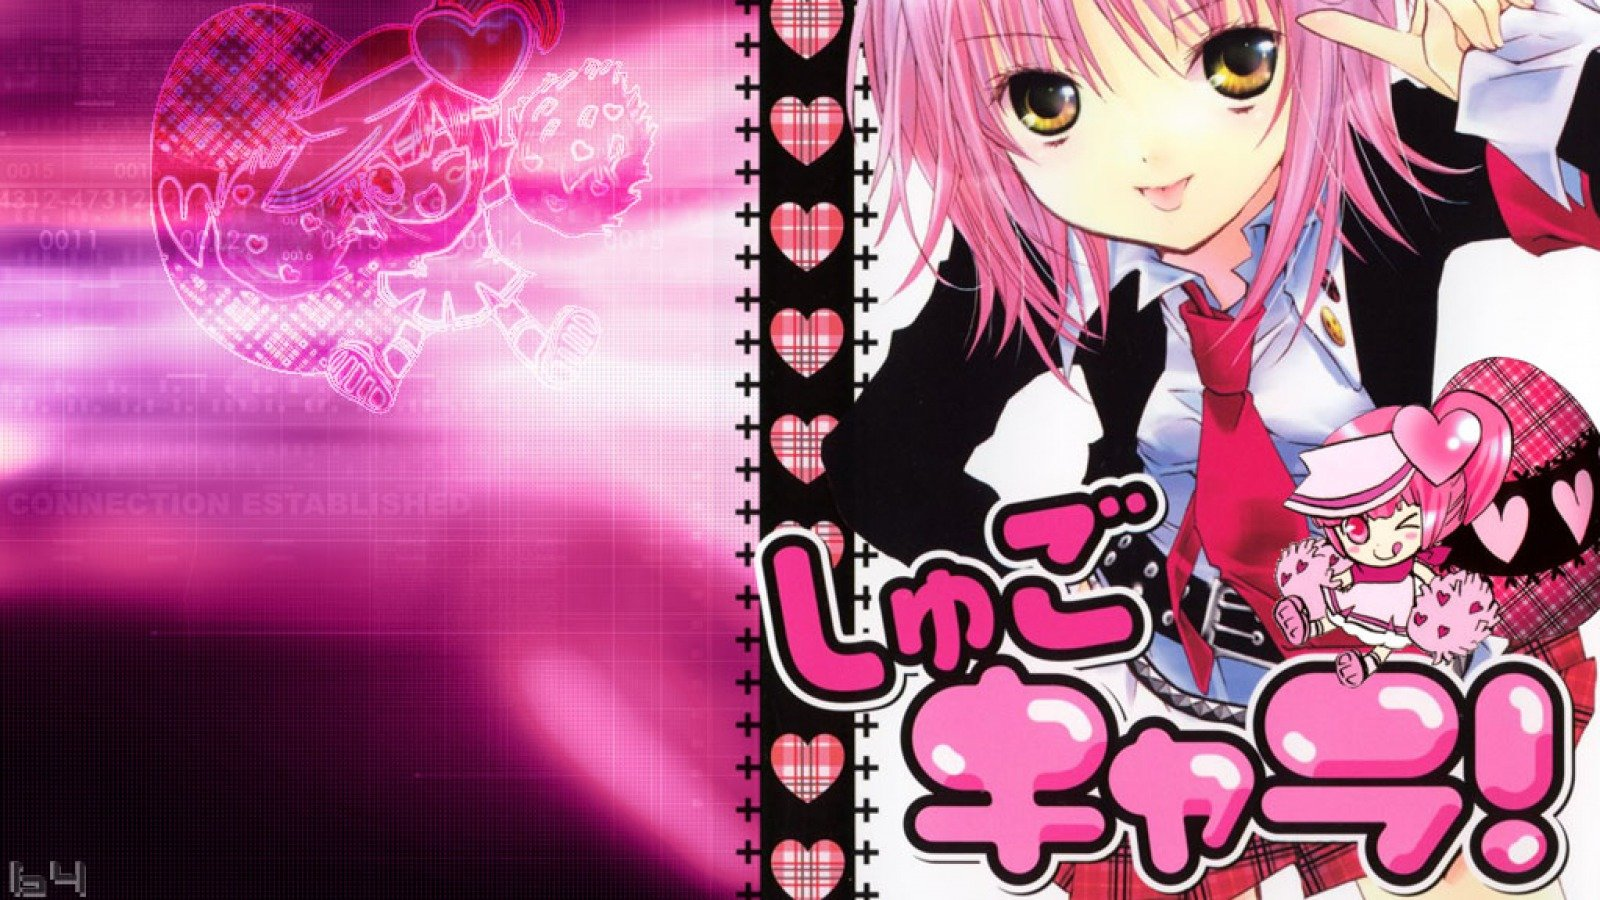 Download hd 1600x900 Shugo Chara! desktop background ID:226860 for free